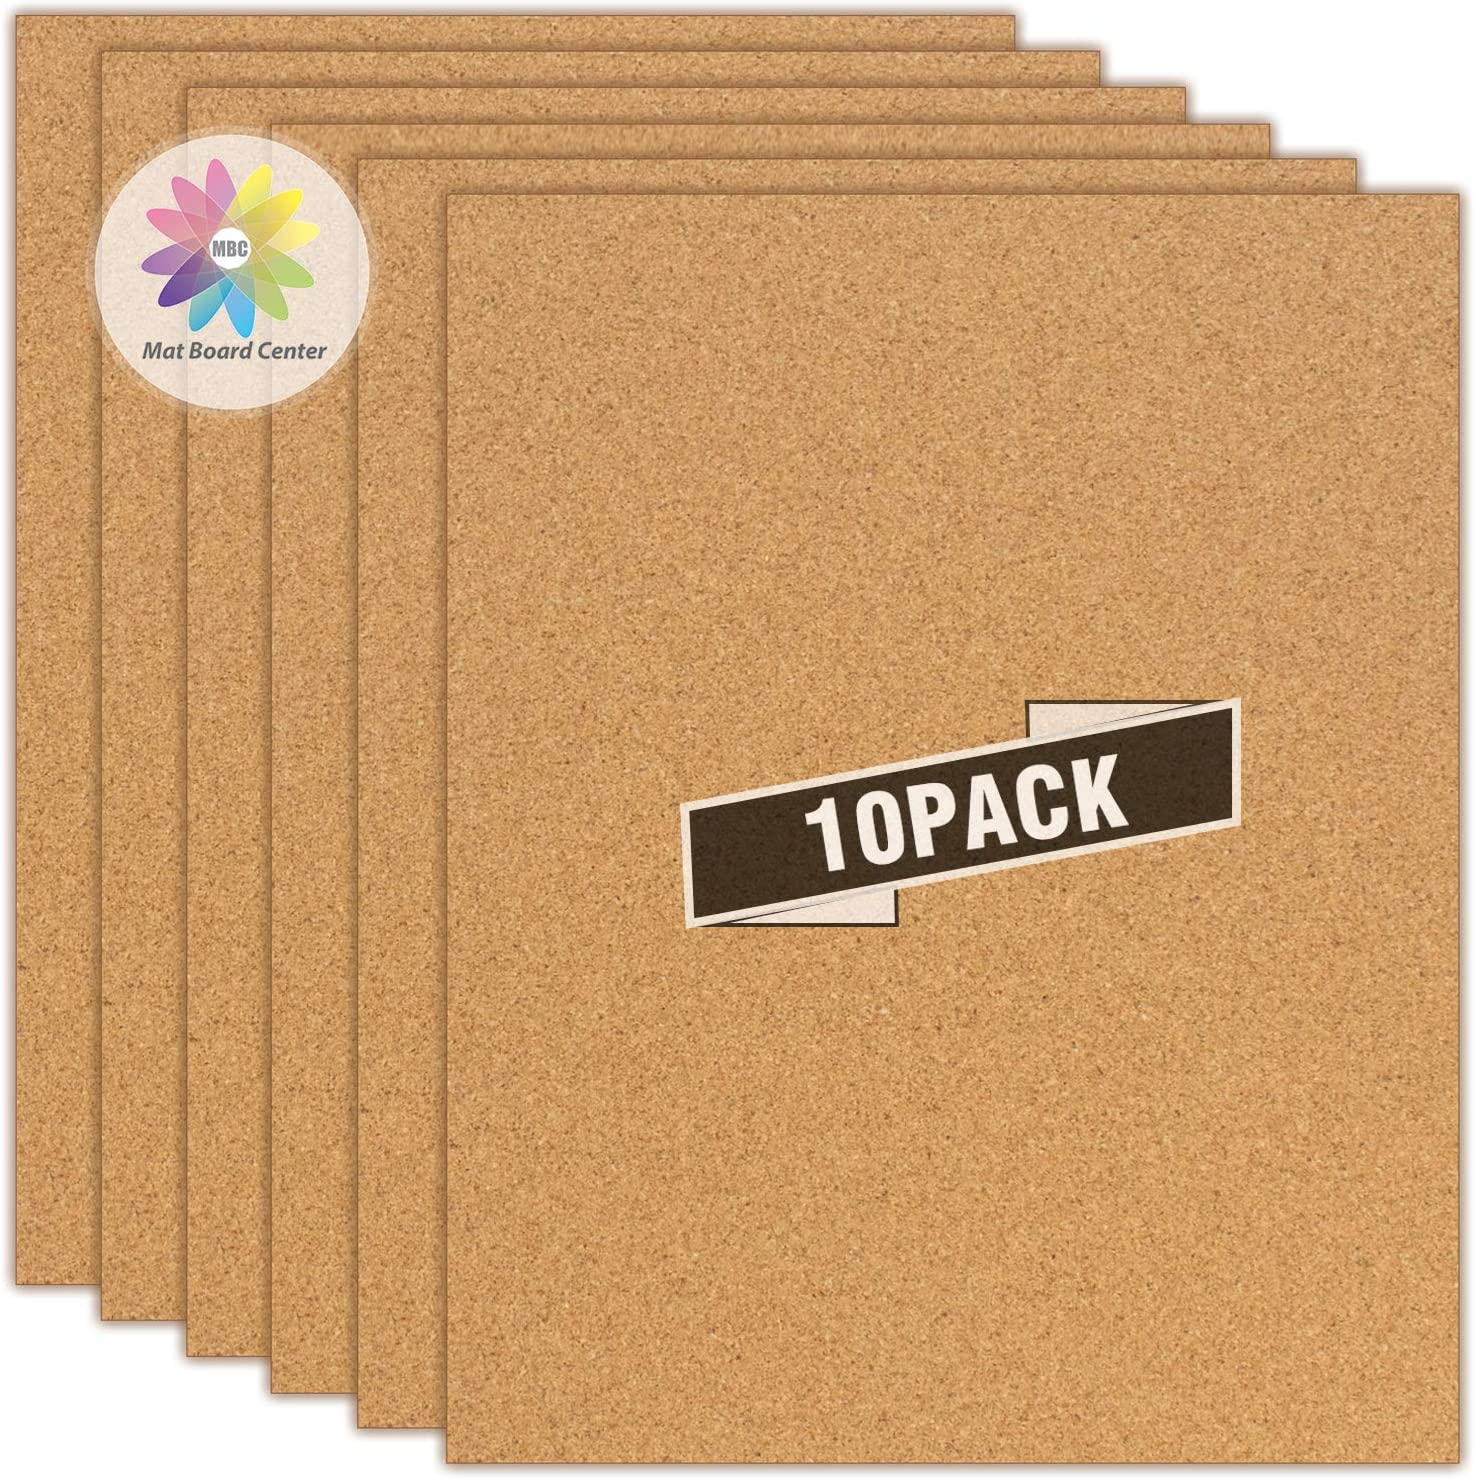 """MBC MAT BOARD CENTER, Pack of 10, 16x20 Cork Foam Boards - 3/16"""" (5mm) Thick - Lightweight - Great for DIY Bulletin Boards, Jewelry Displays, Wall Organizers, Memo Boards"""